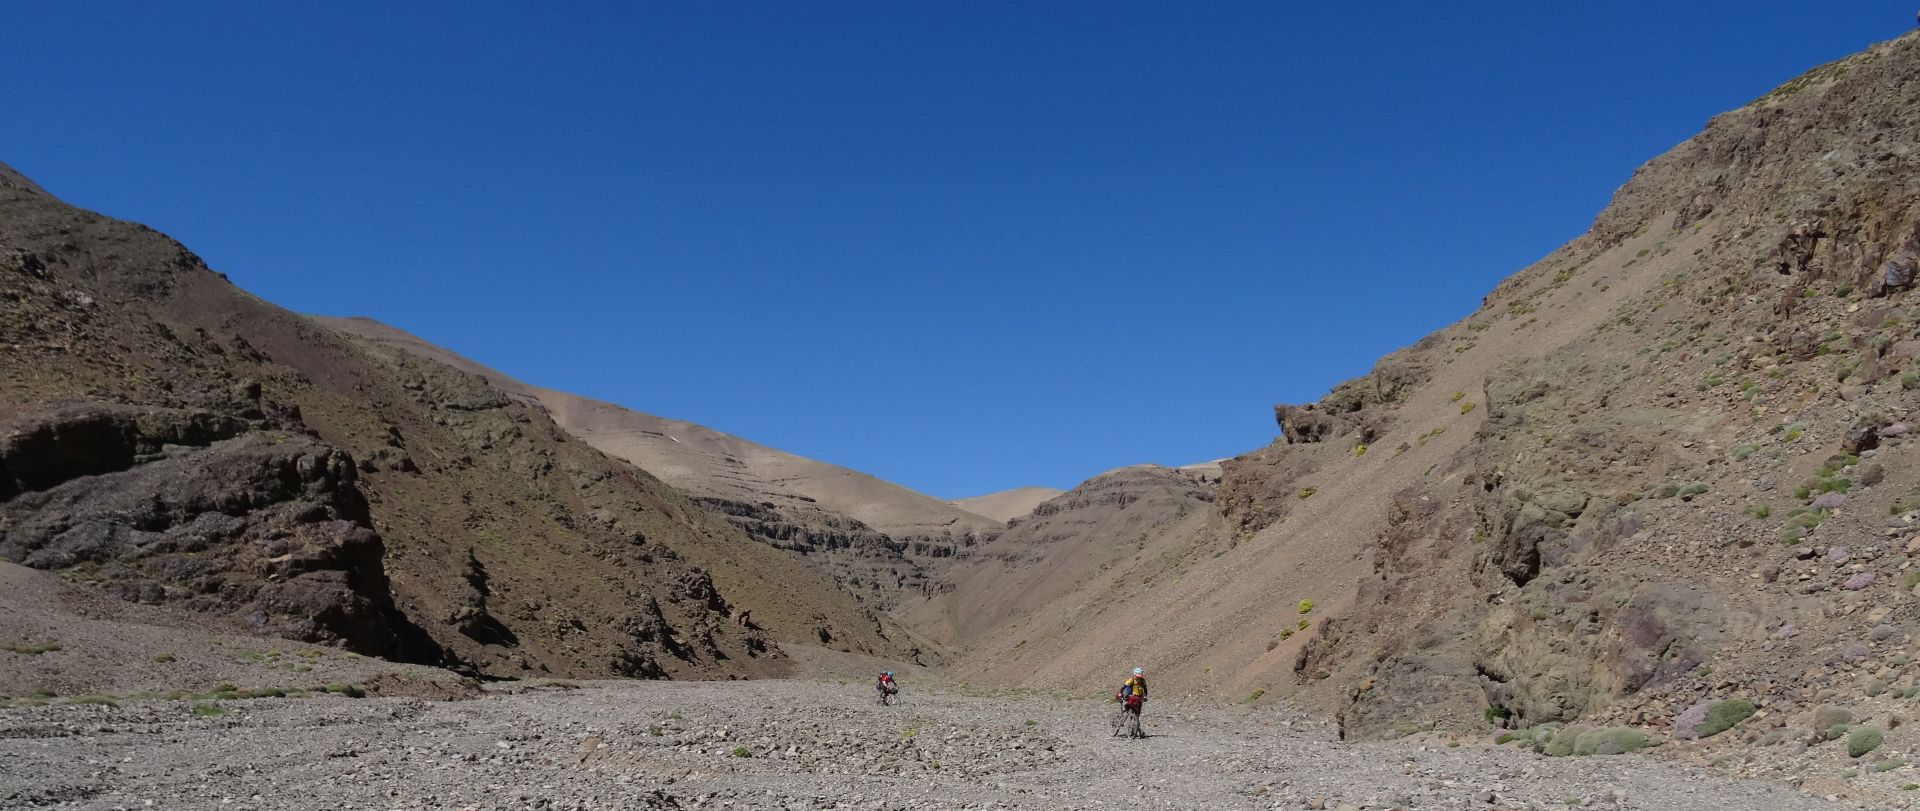 Day 6 - The moon, again. Seemingly-endless dried-up riverbed, beneath Tizi-n-Tamadla pass. Very, very slow going! © Steve Woodward